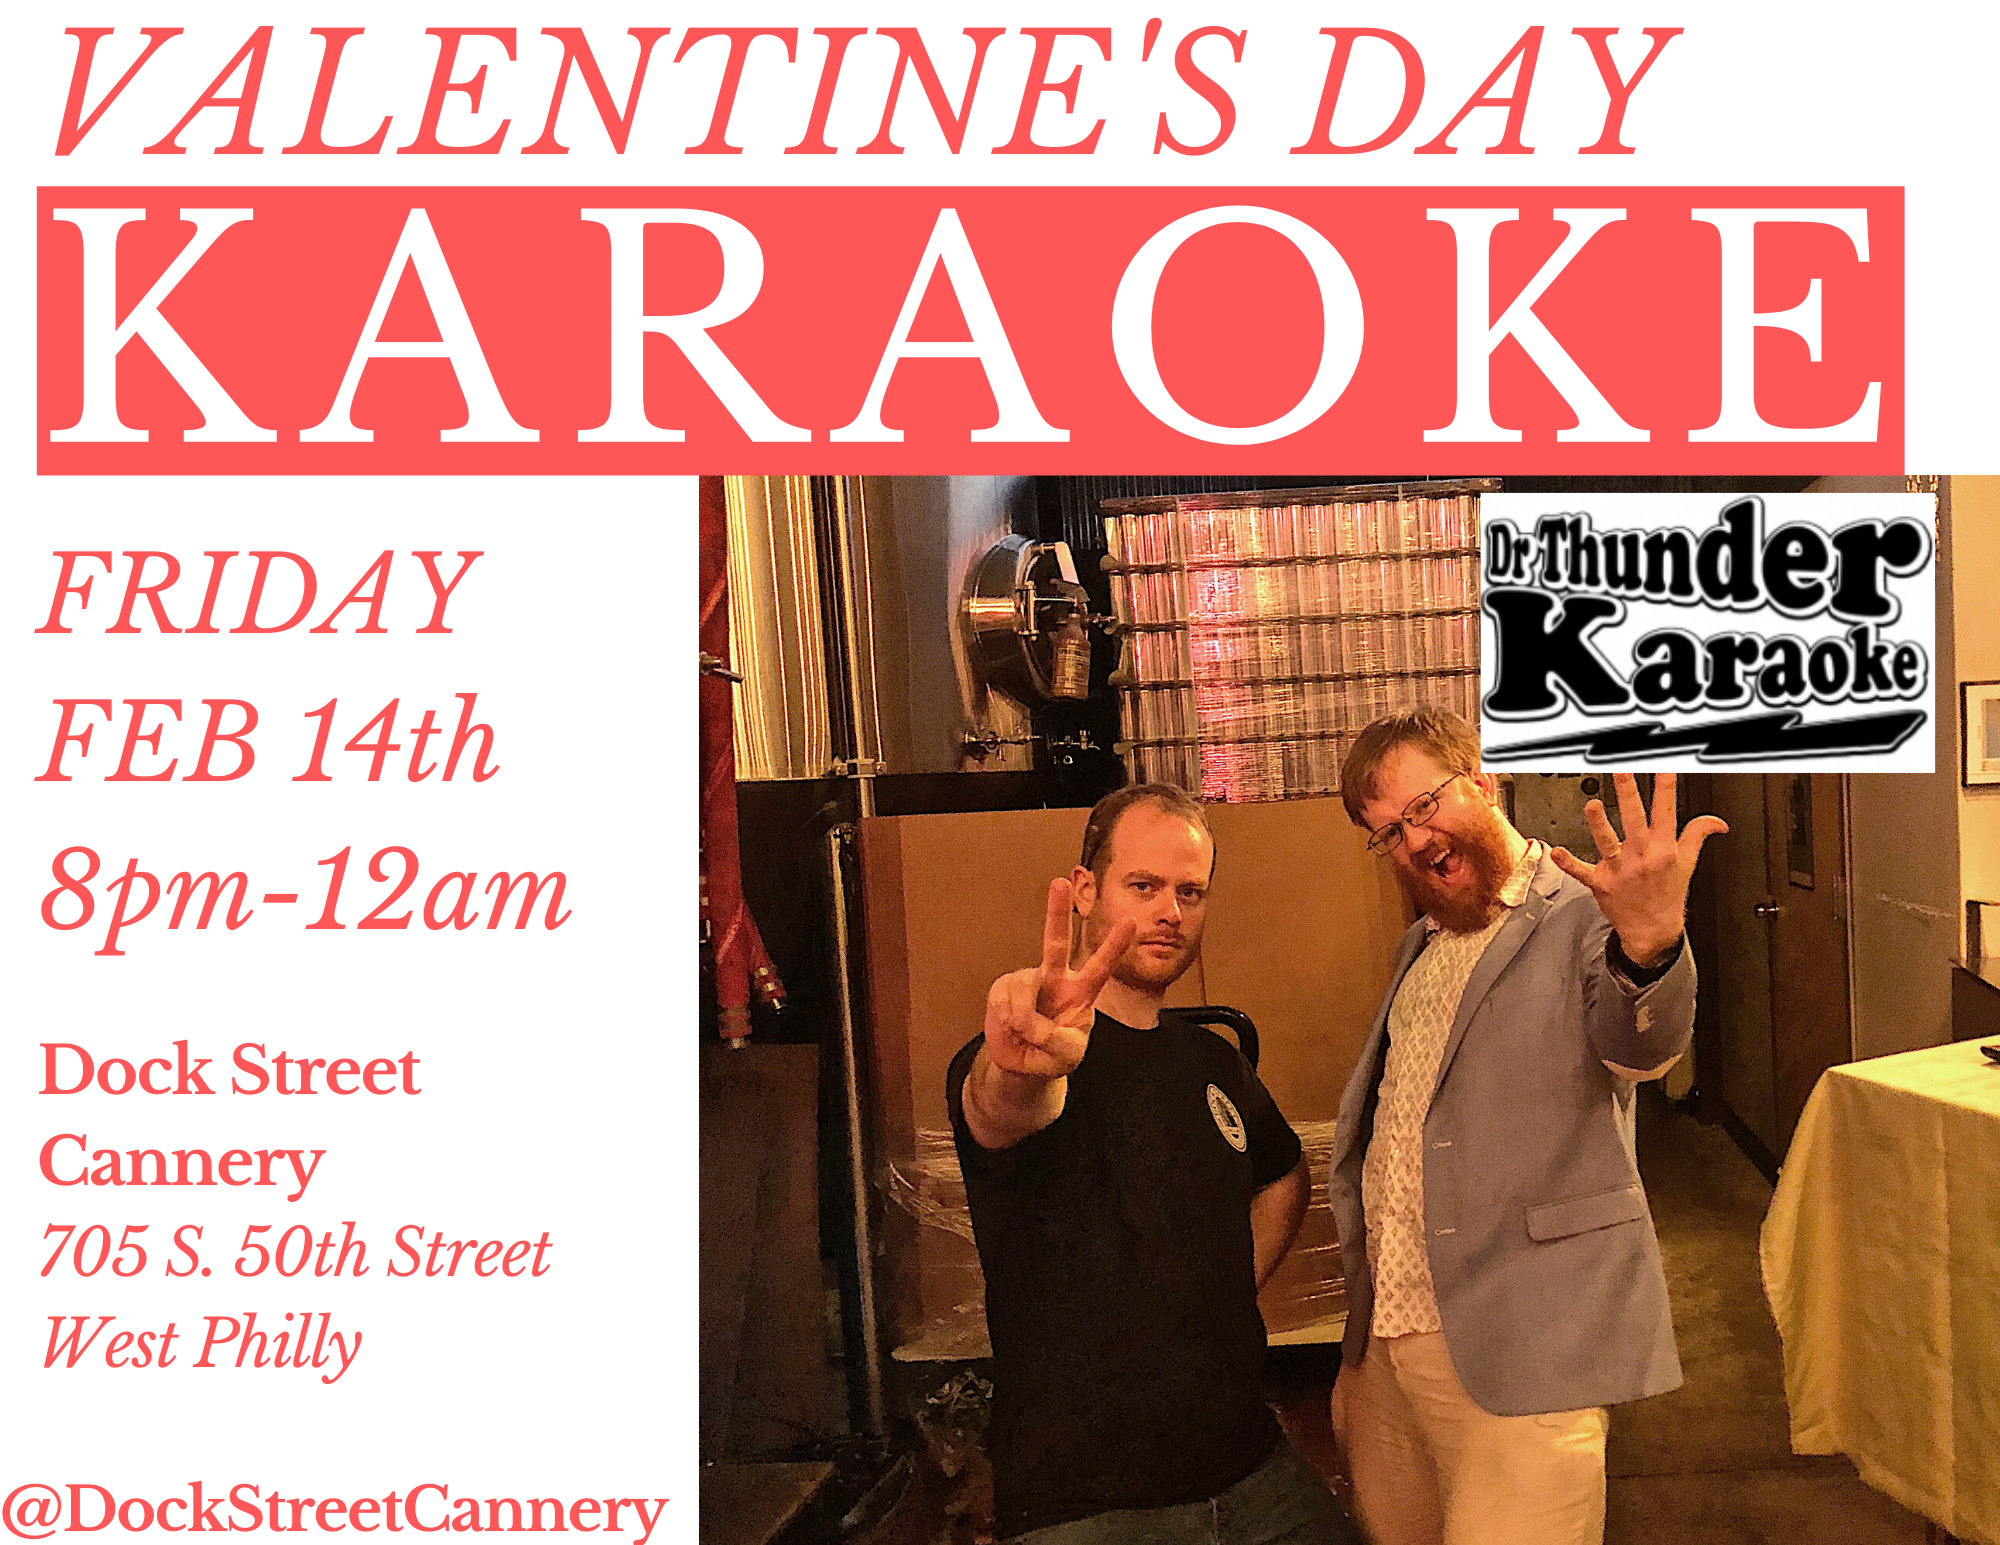 Valentine's Day Karaoke at Dock Street Cannery